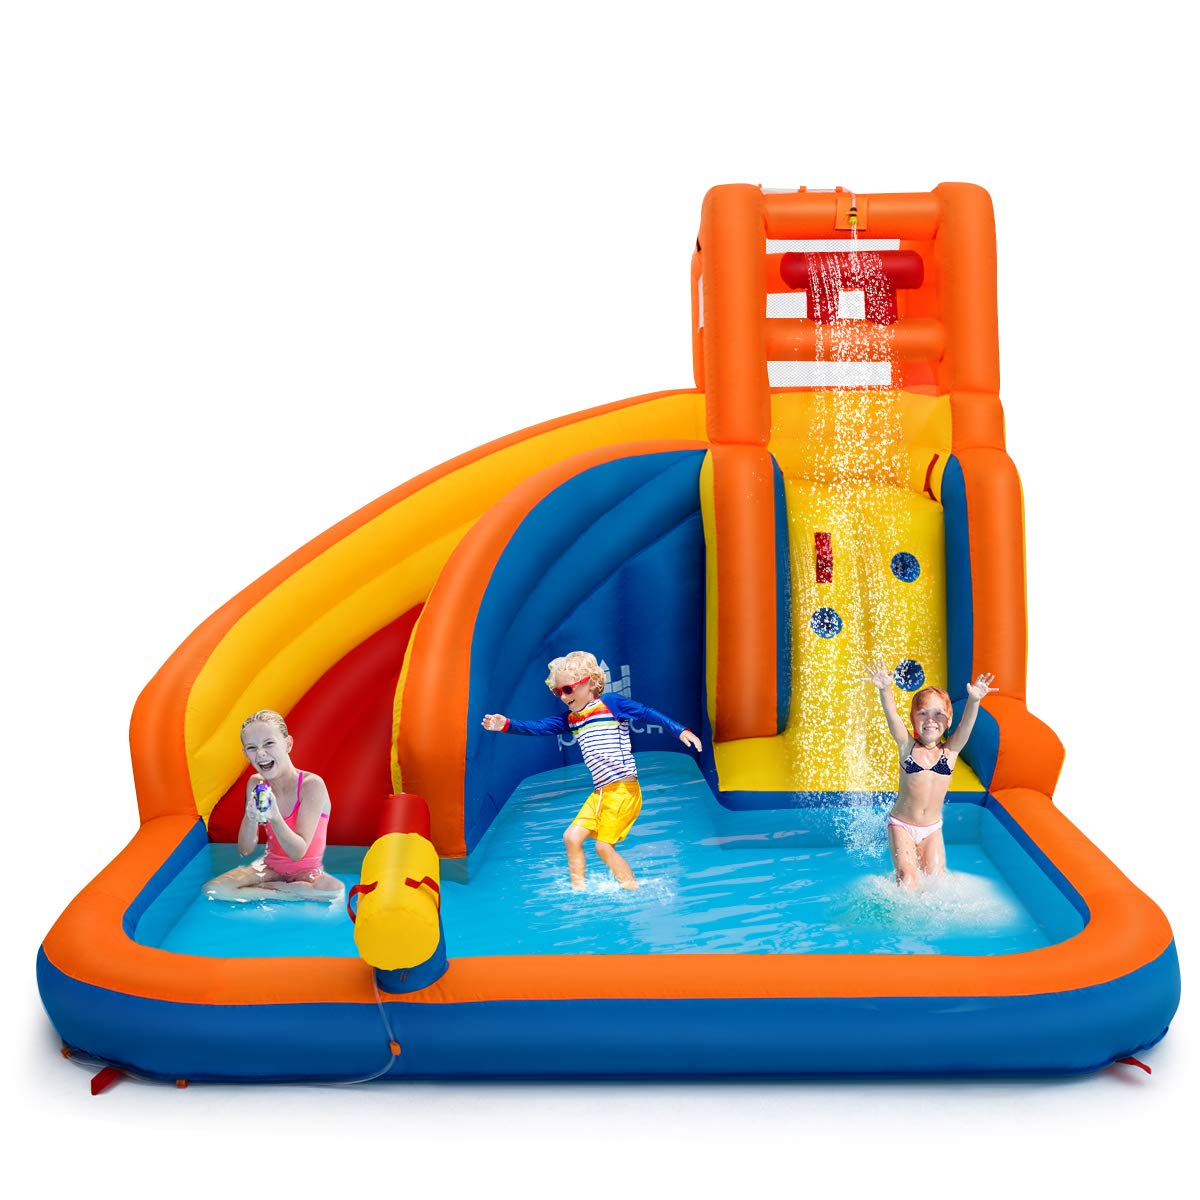 Costzon Inflatable Water Slide, 5-in-1 Kids Bouncer w/ Climbing Wall, Splash Pool, Water Cannon, Pouring Sink, Including Oxford Carry Bag, Repairing Kit, Stakes, Hose (Without Blower) by Costzon